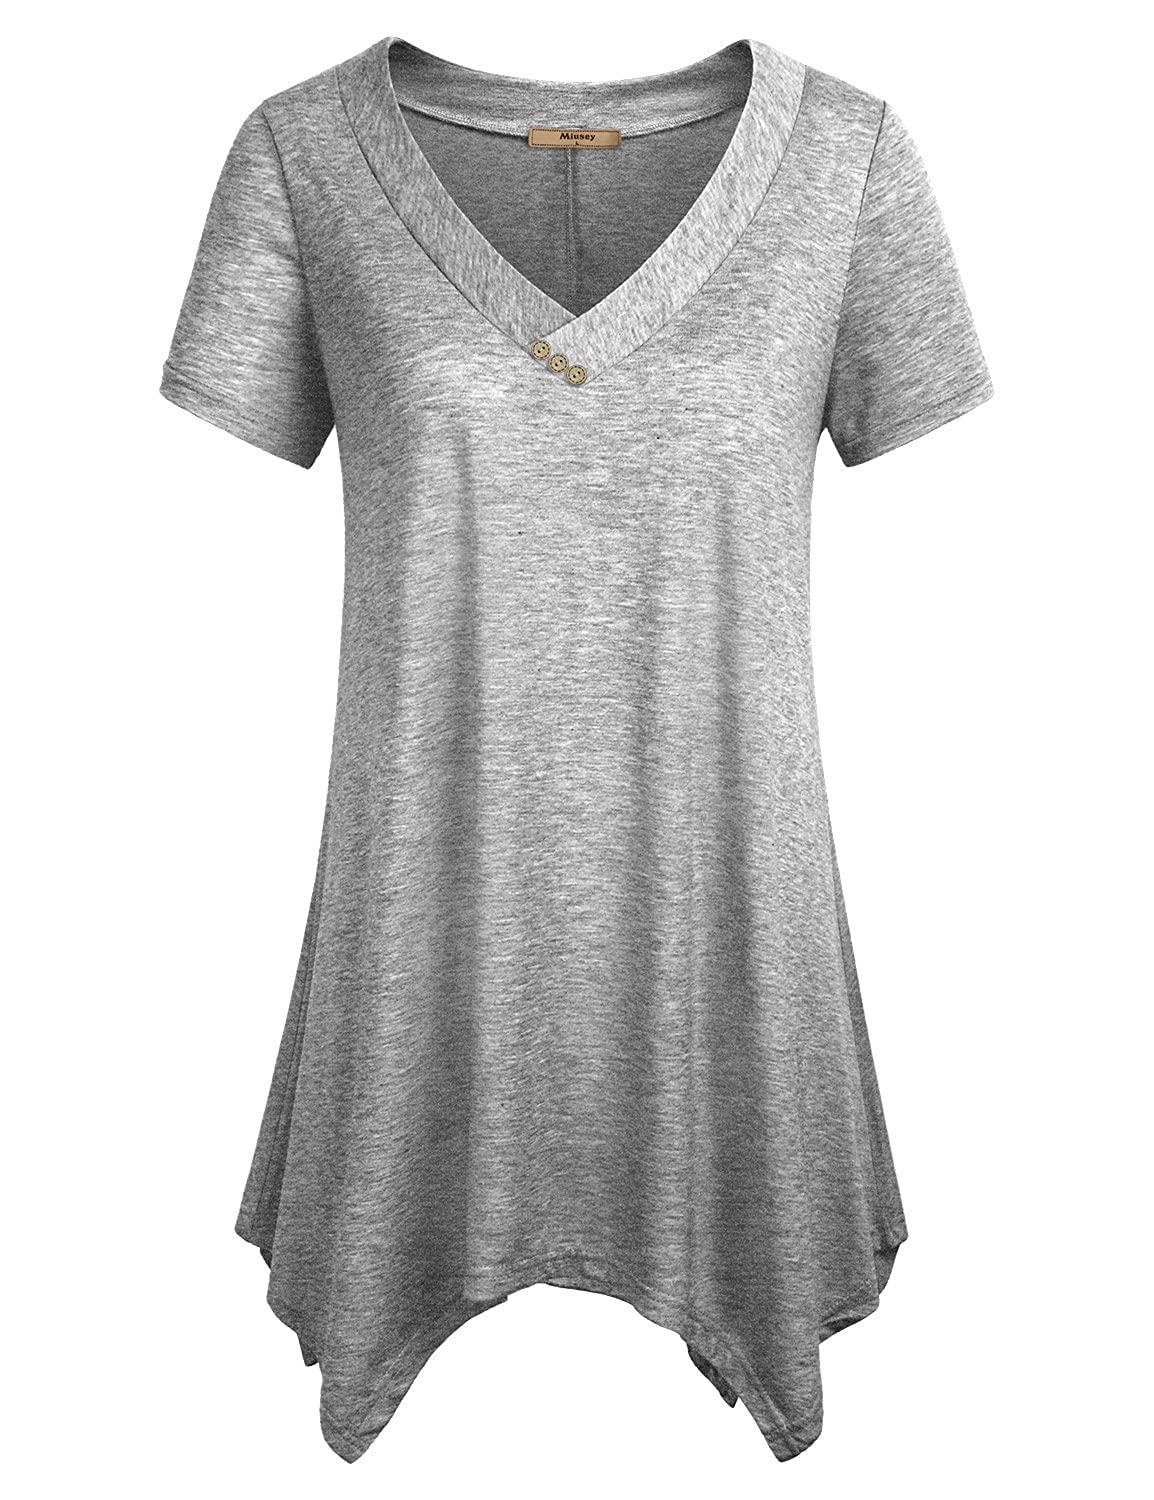 Miusey Womens Short Sleeve V Neck Flowy Tunic Top